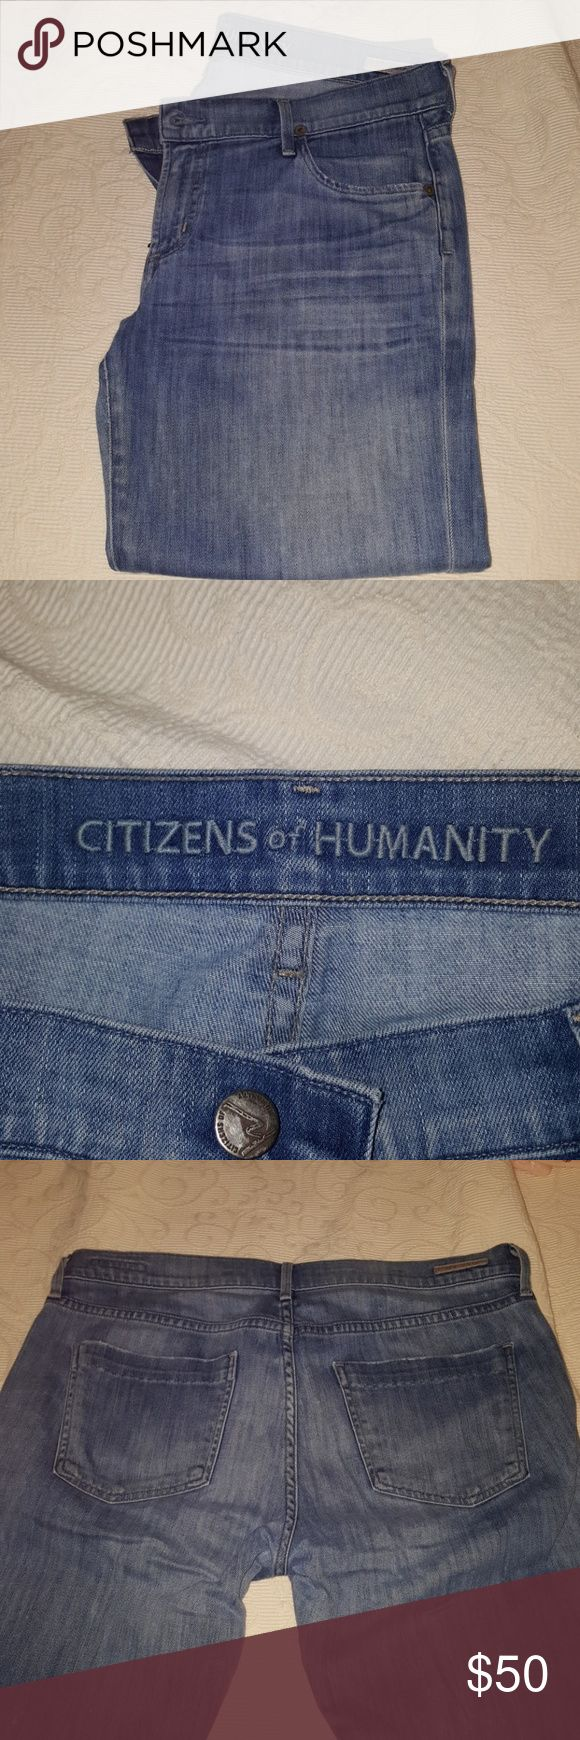 **SALE TODAY**Citizens of Humanity crop jeans Size 31 Capri length jeans by Citizens of Humanity. Very distressed finish...zipper works perfectly. Have been worn but have tons of life left. A steal at this price???? Citizens of Humanity Jeans Ankle & Cropped